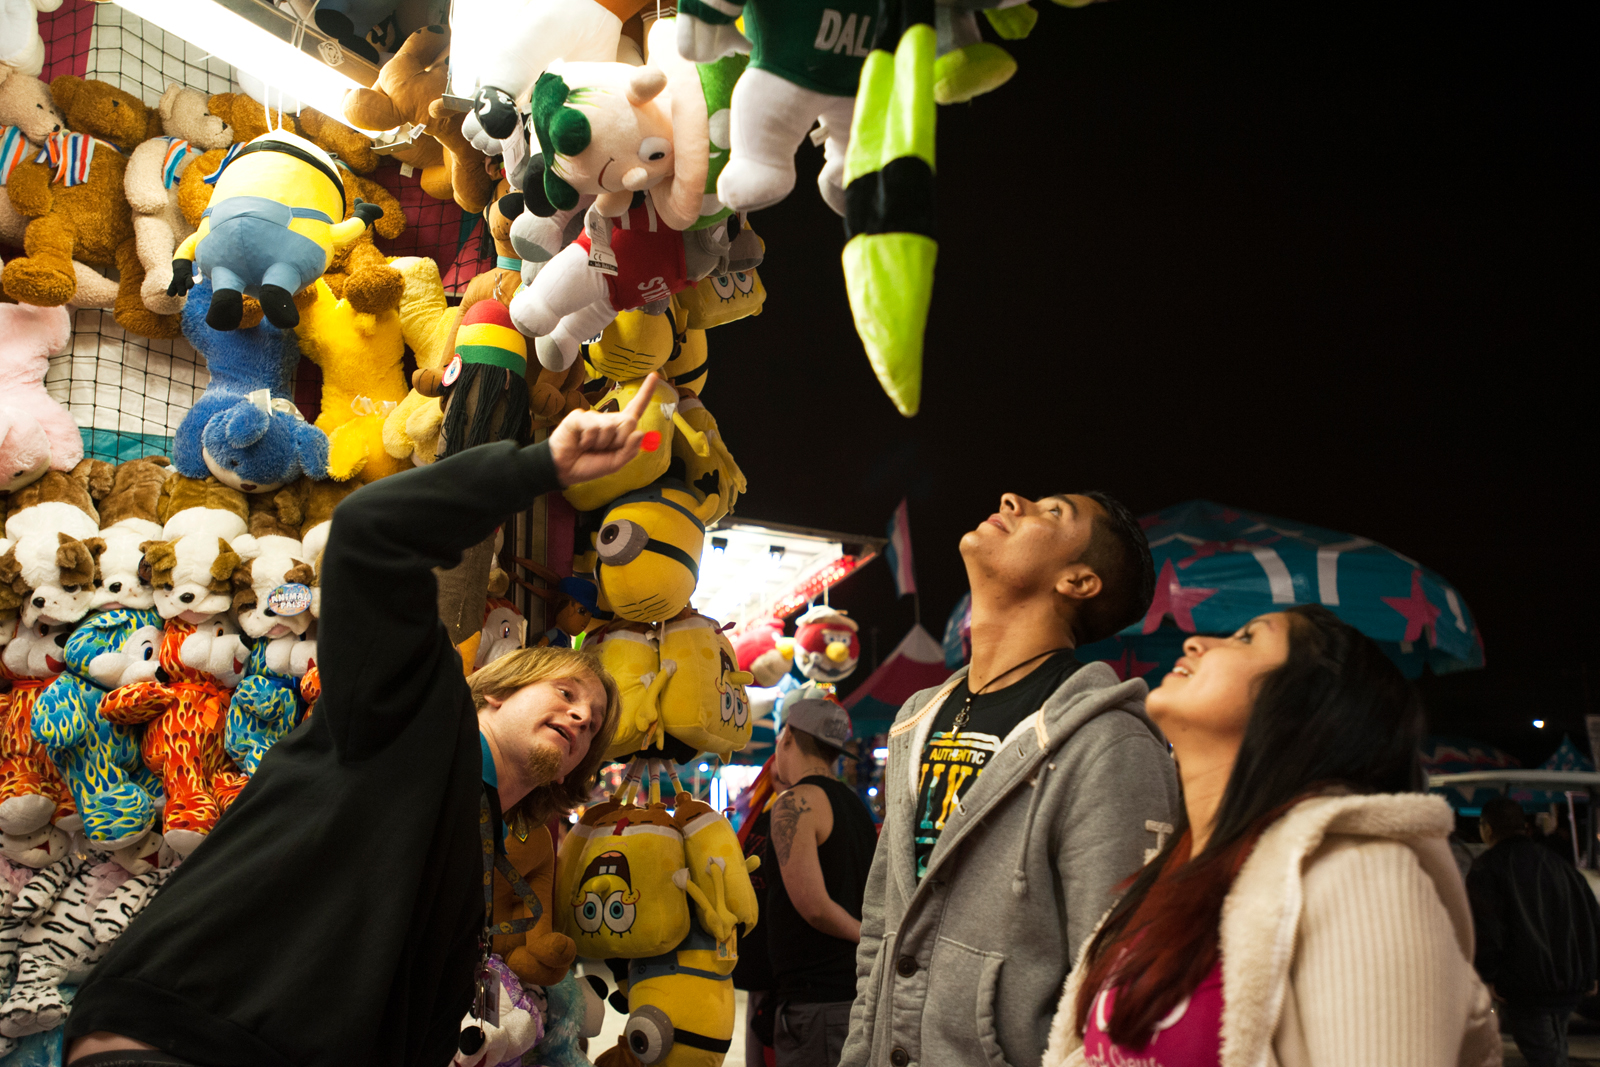 Adan and Toni Torres are convinced to take a double-or-nothing bet on a larger prize, eventually winning a stuffed pig at the dart game.